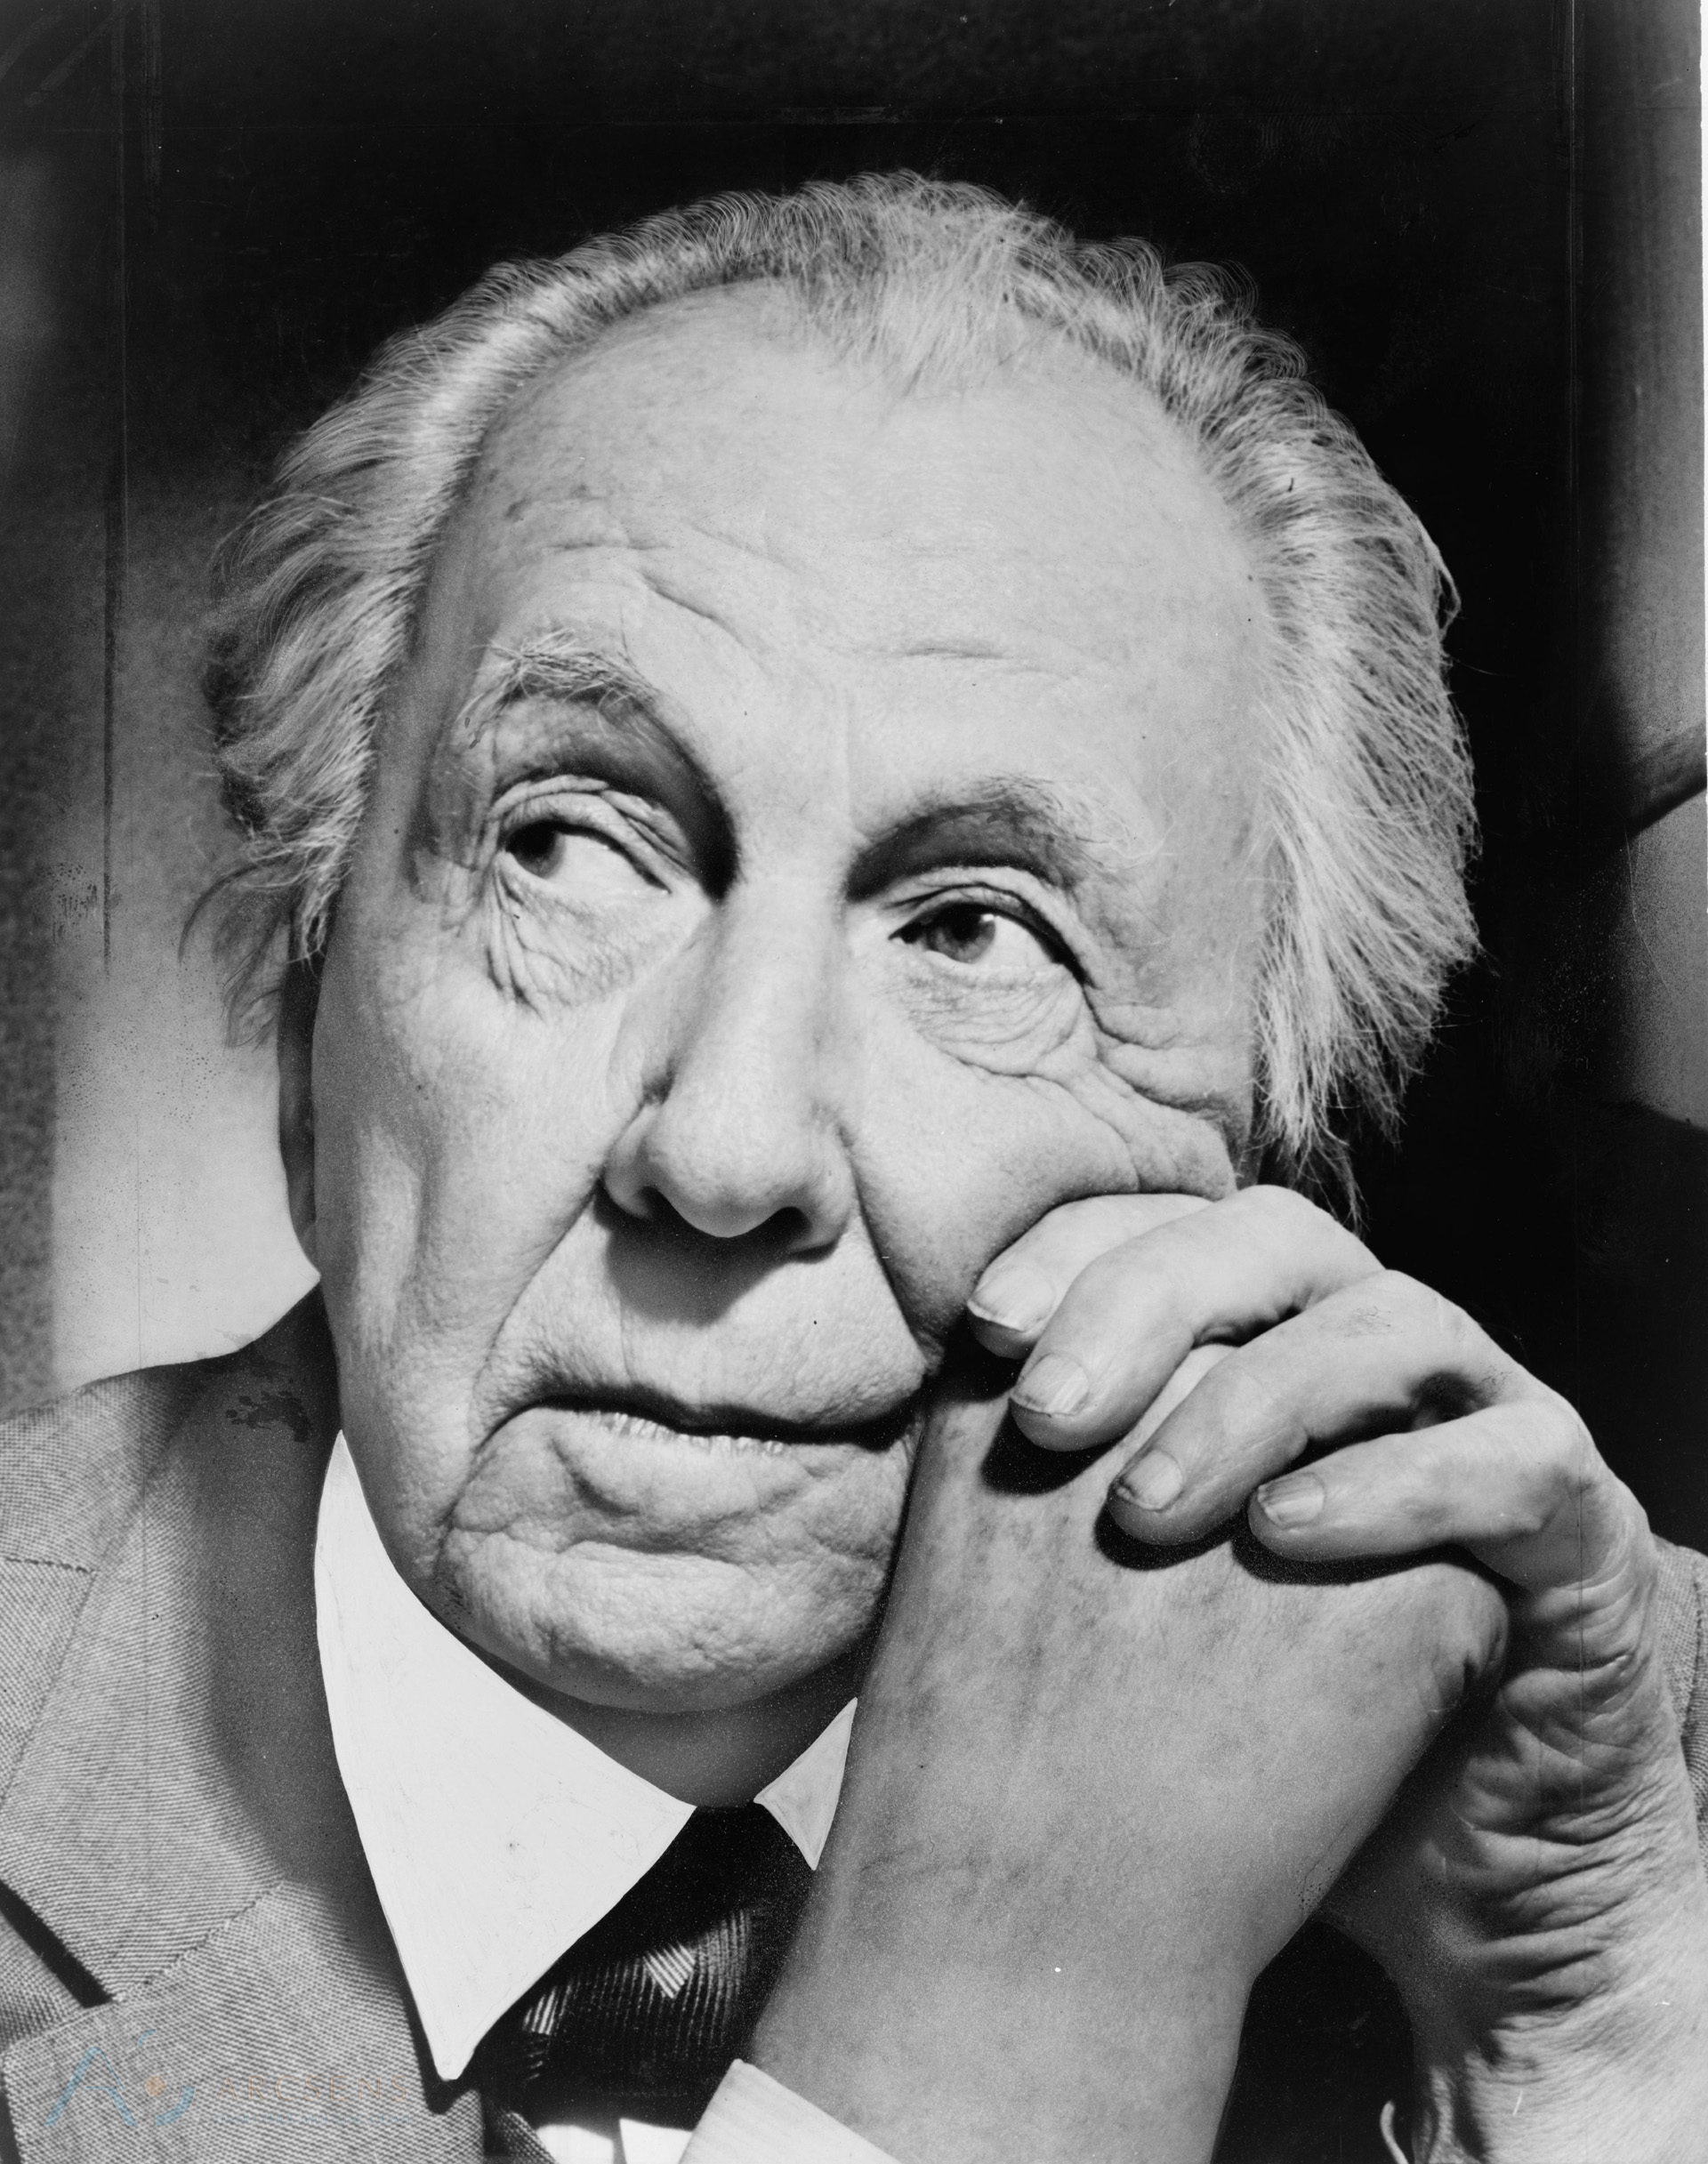 12 TIPS FOR PRECIOUS DESIGN PHILOSOPHY OF ARCHITECTS FRANK LLOYD WRIGHT